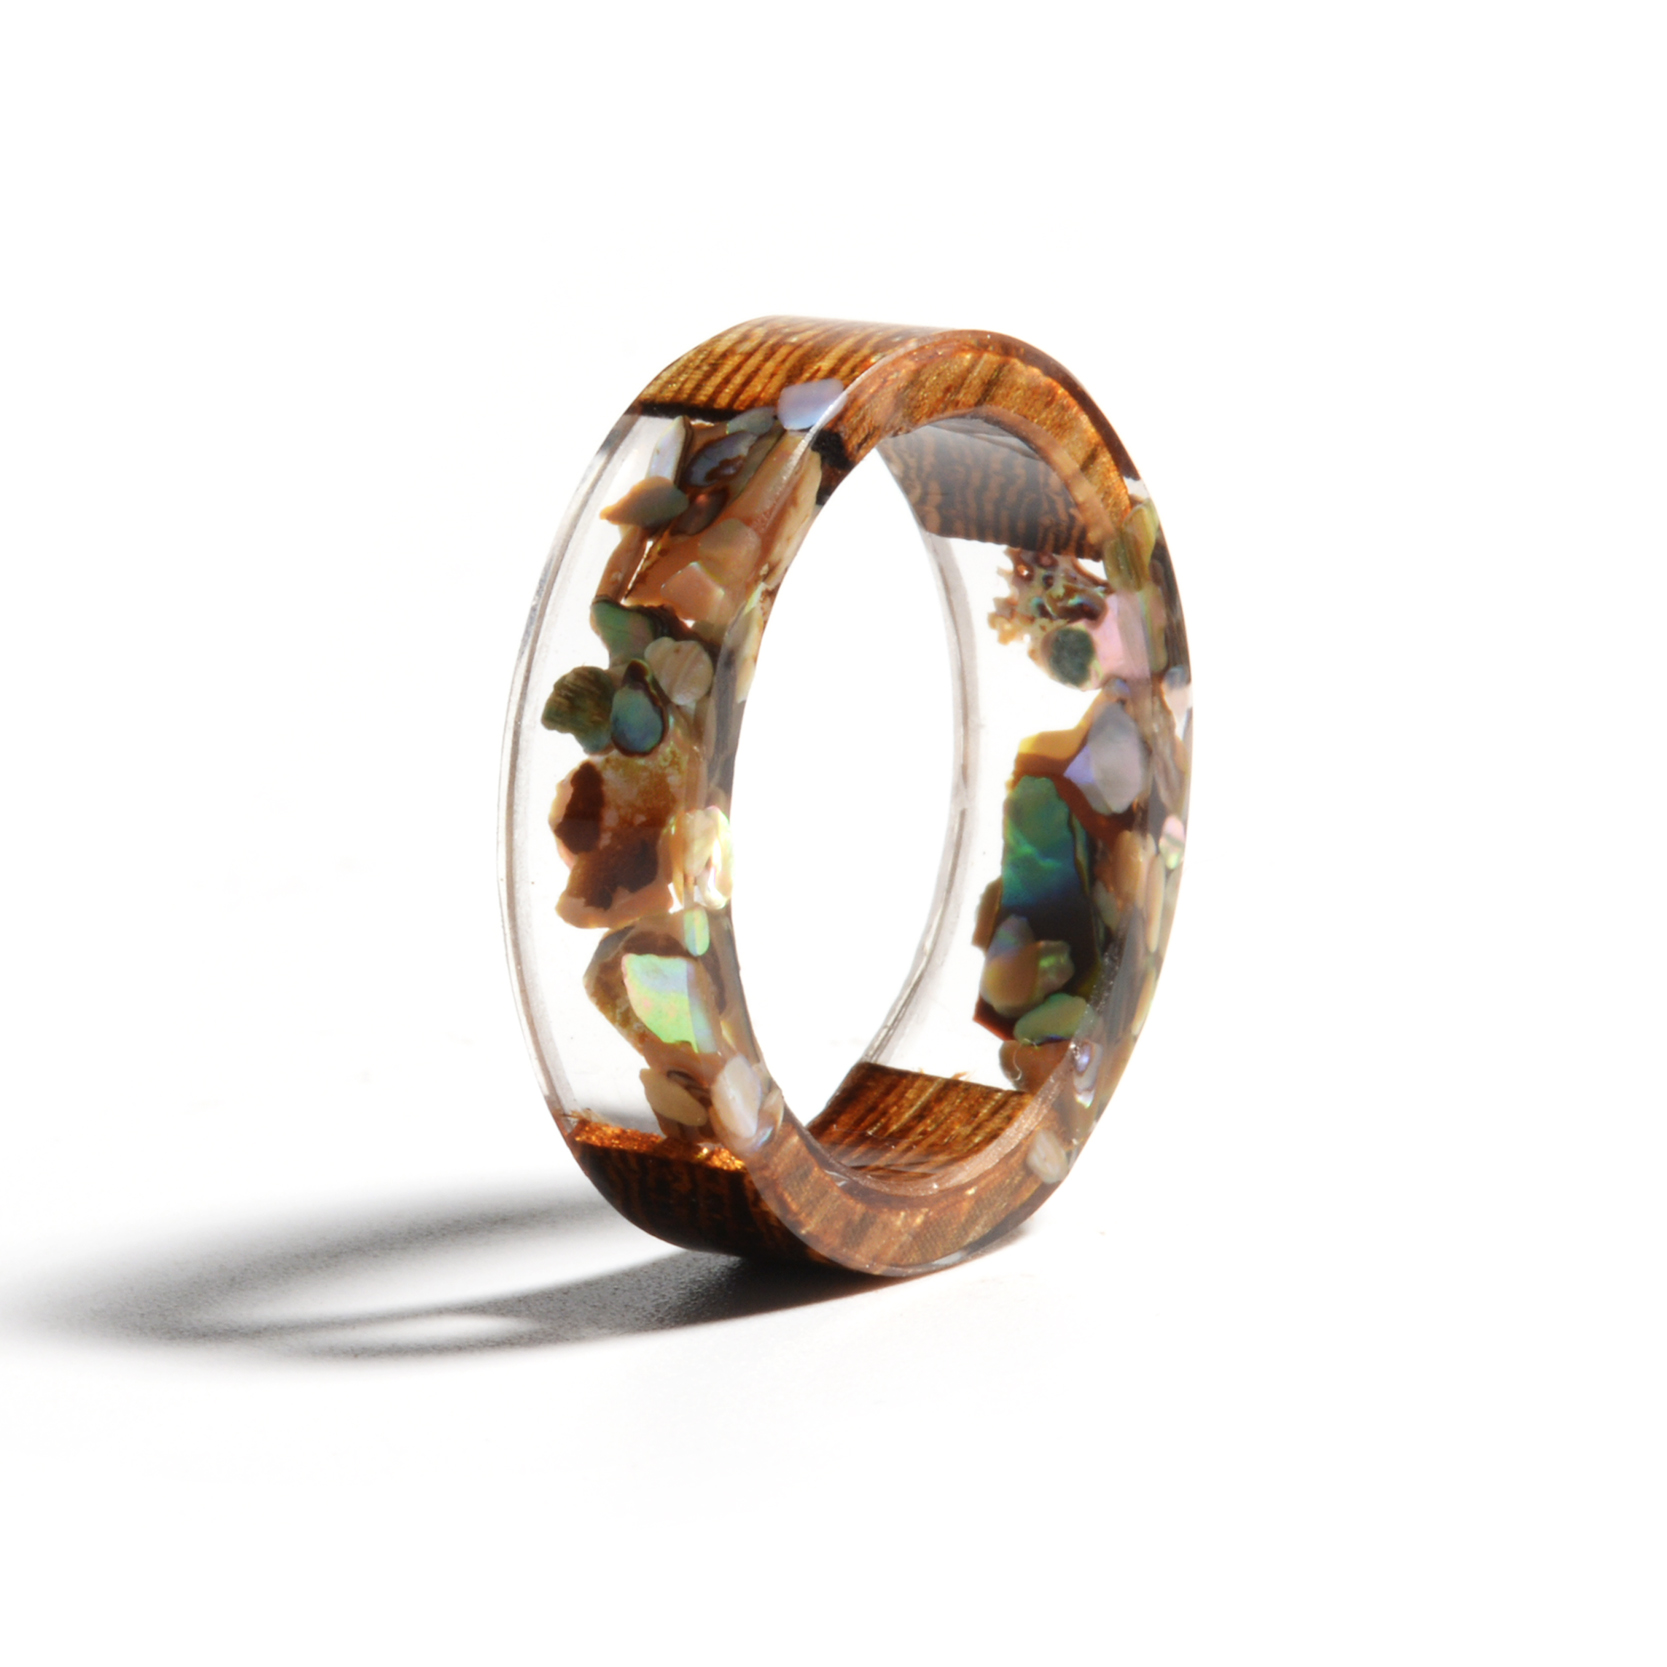 Handmade Wood Resin Ring Many Styles 32